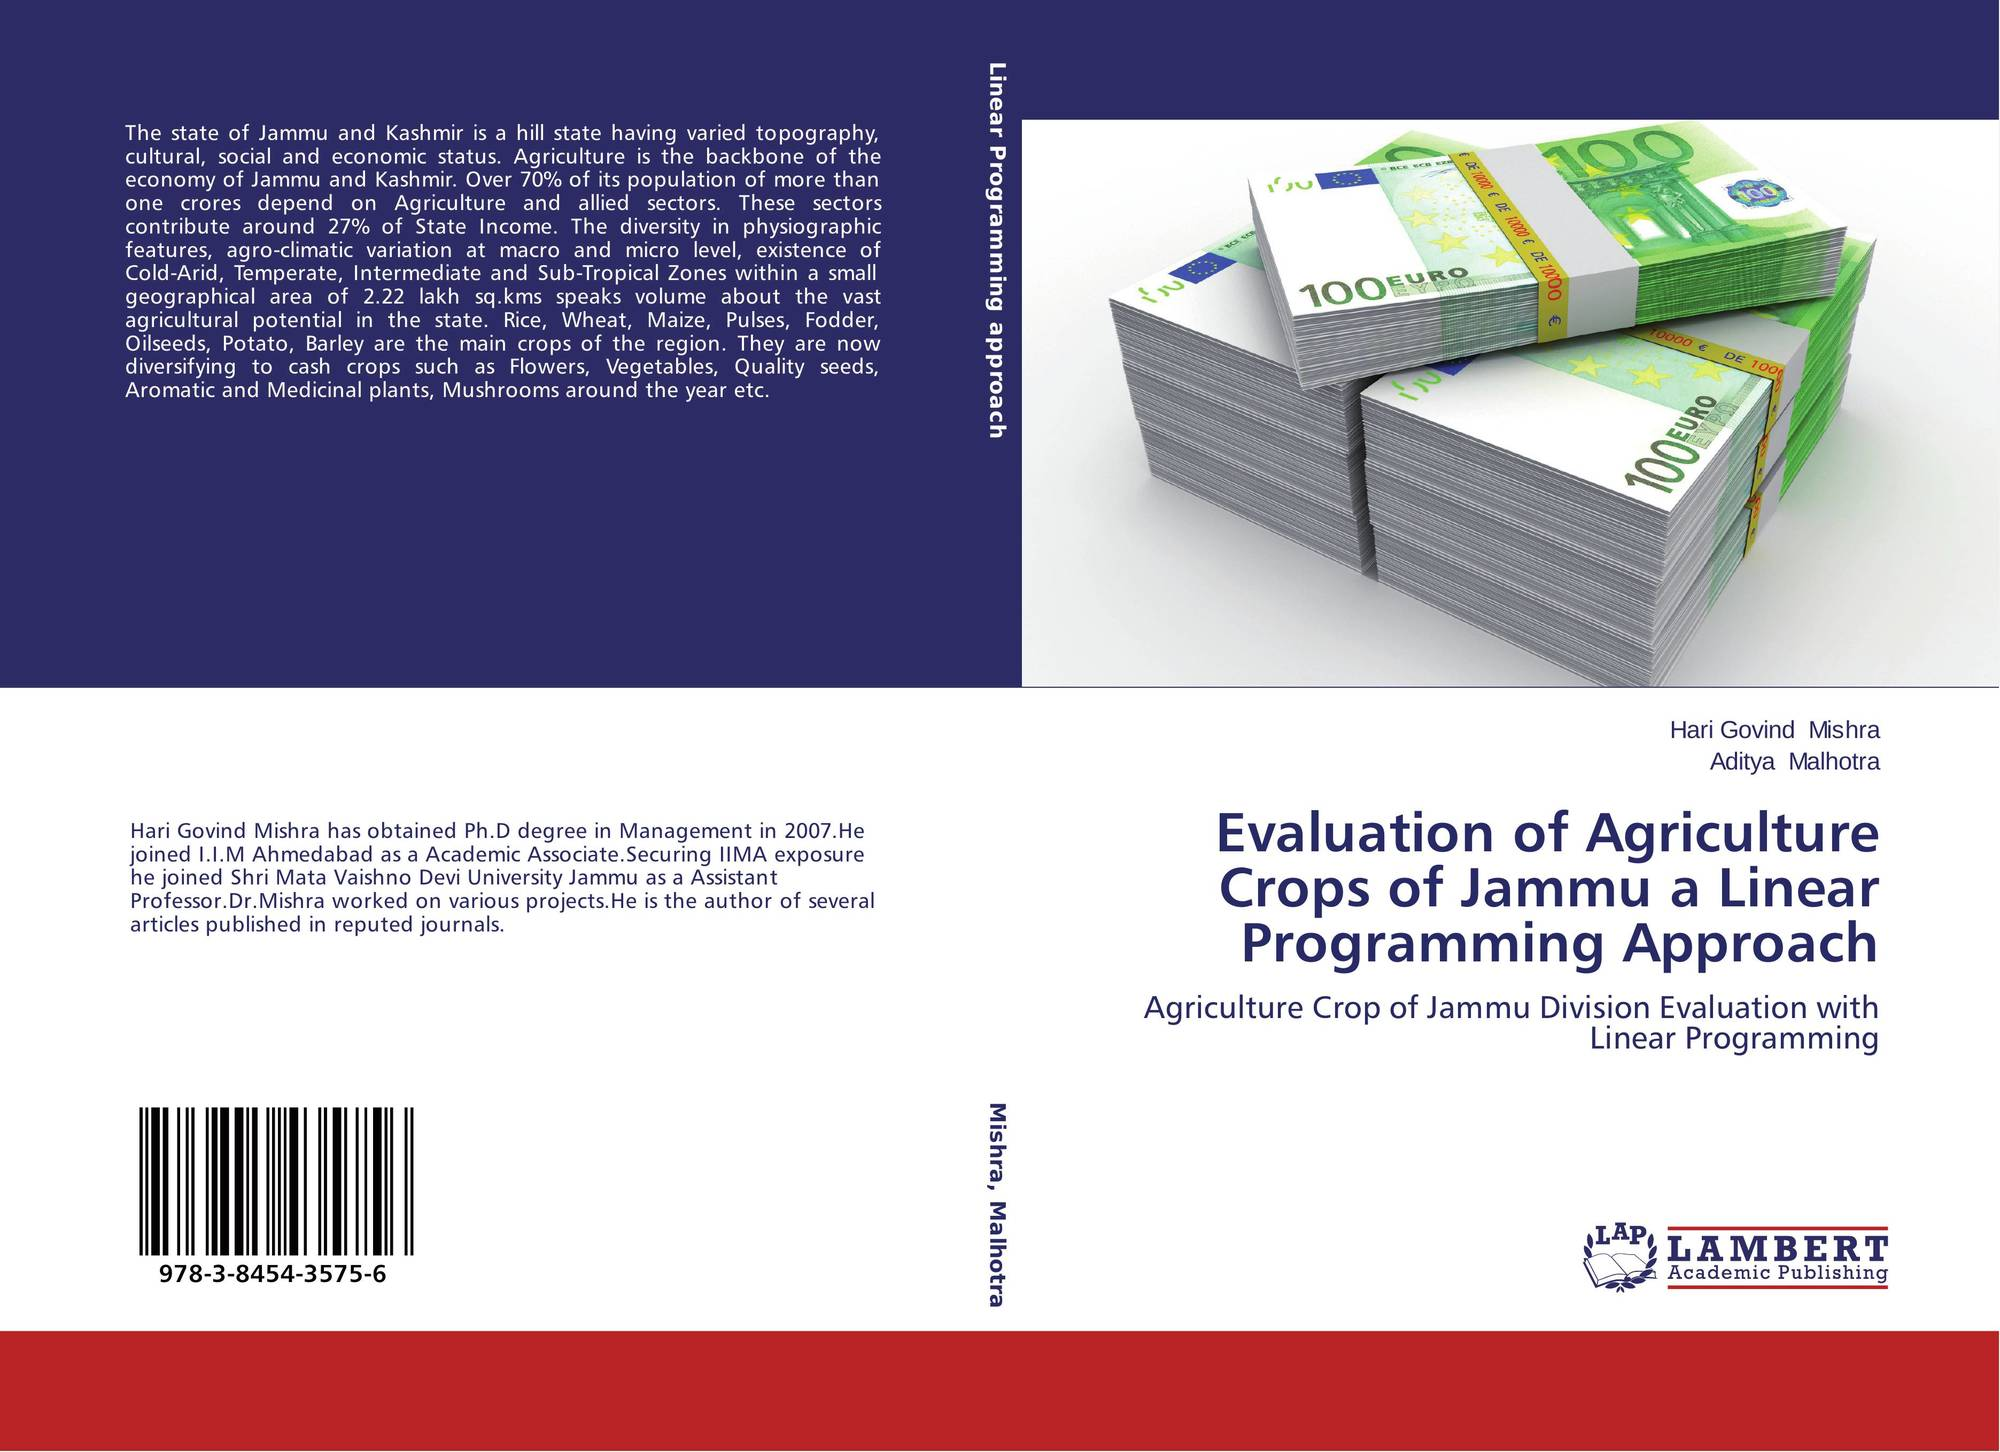 agriculture industry linkages in the economy of jammu and kashmir essay Social and economic geography of country including the main features of indian agriculture and natural resources including forests, wild life, biodiversity, lakes, rivers and prevention and abatement of pollution 20 marks 4 (a) indian polity:-the questions on indian polity will be :: welcome to the jammu and kashmir public service.